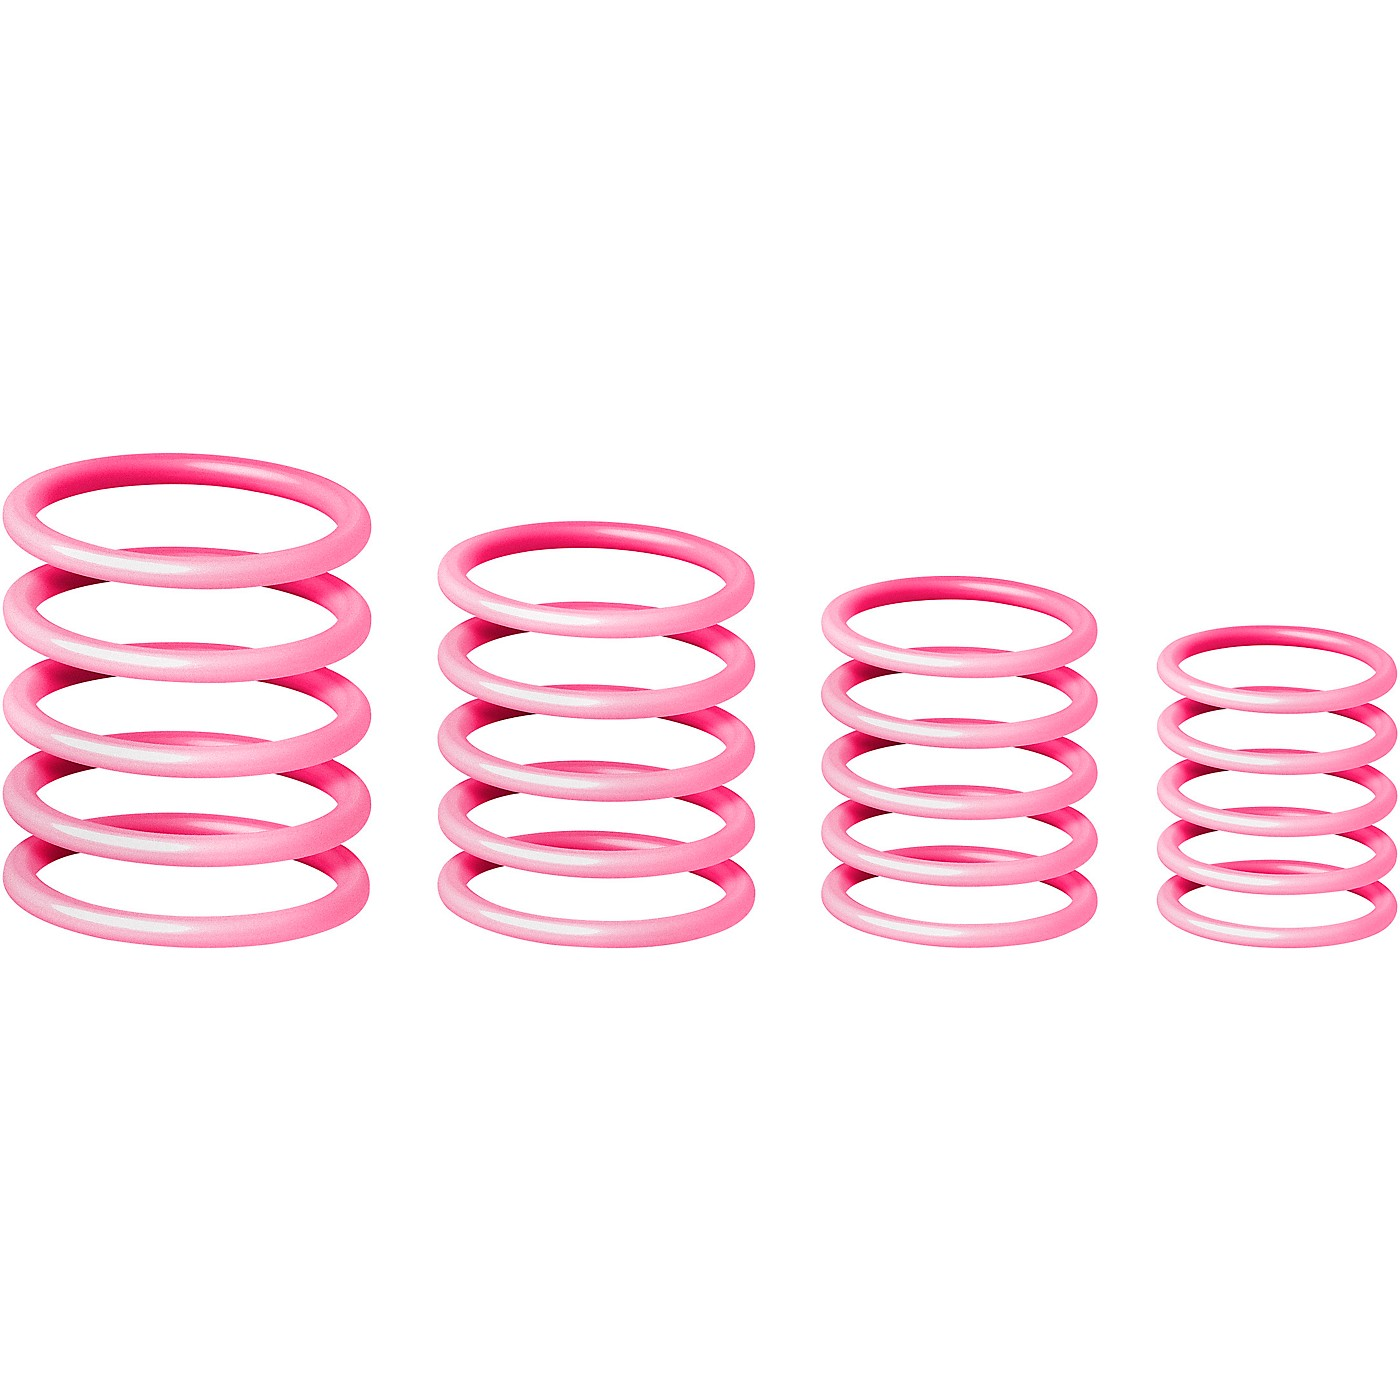 Gravity Stands Universal Gravity Ring Pack - Misty Rose Pink thumbnail